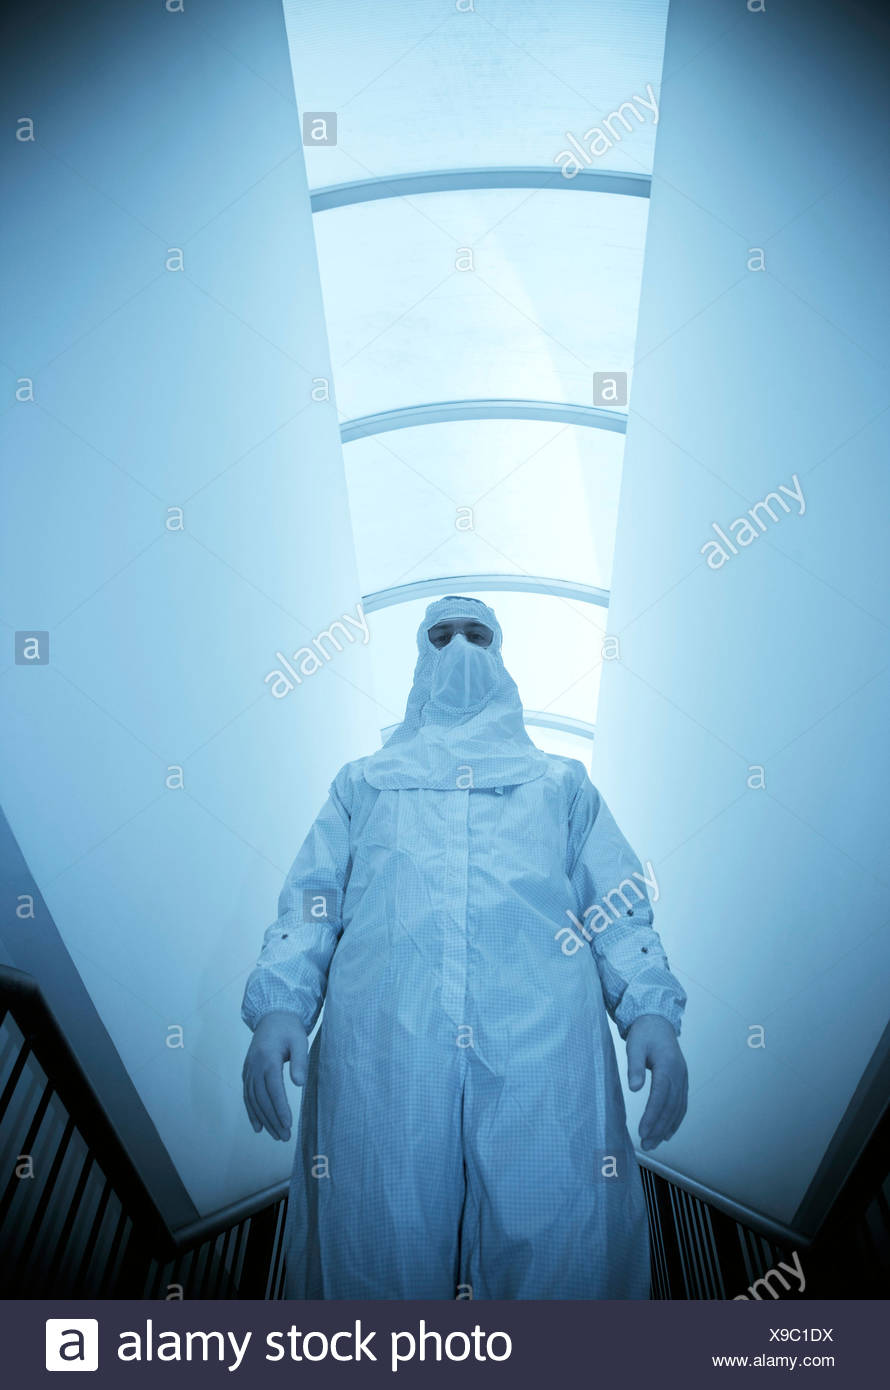 Scientist in an isolation suit Stock Photo